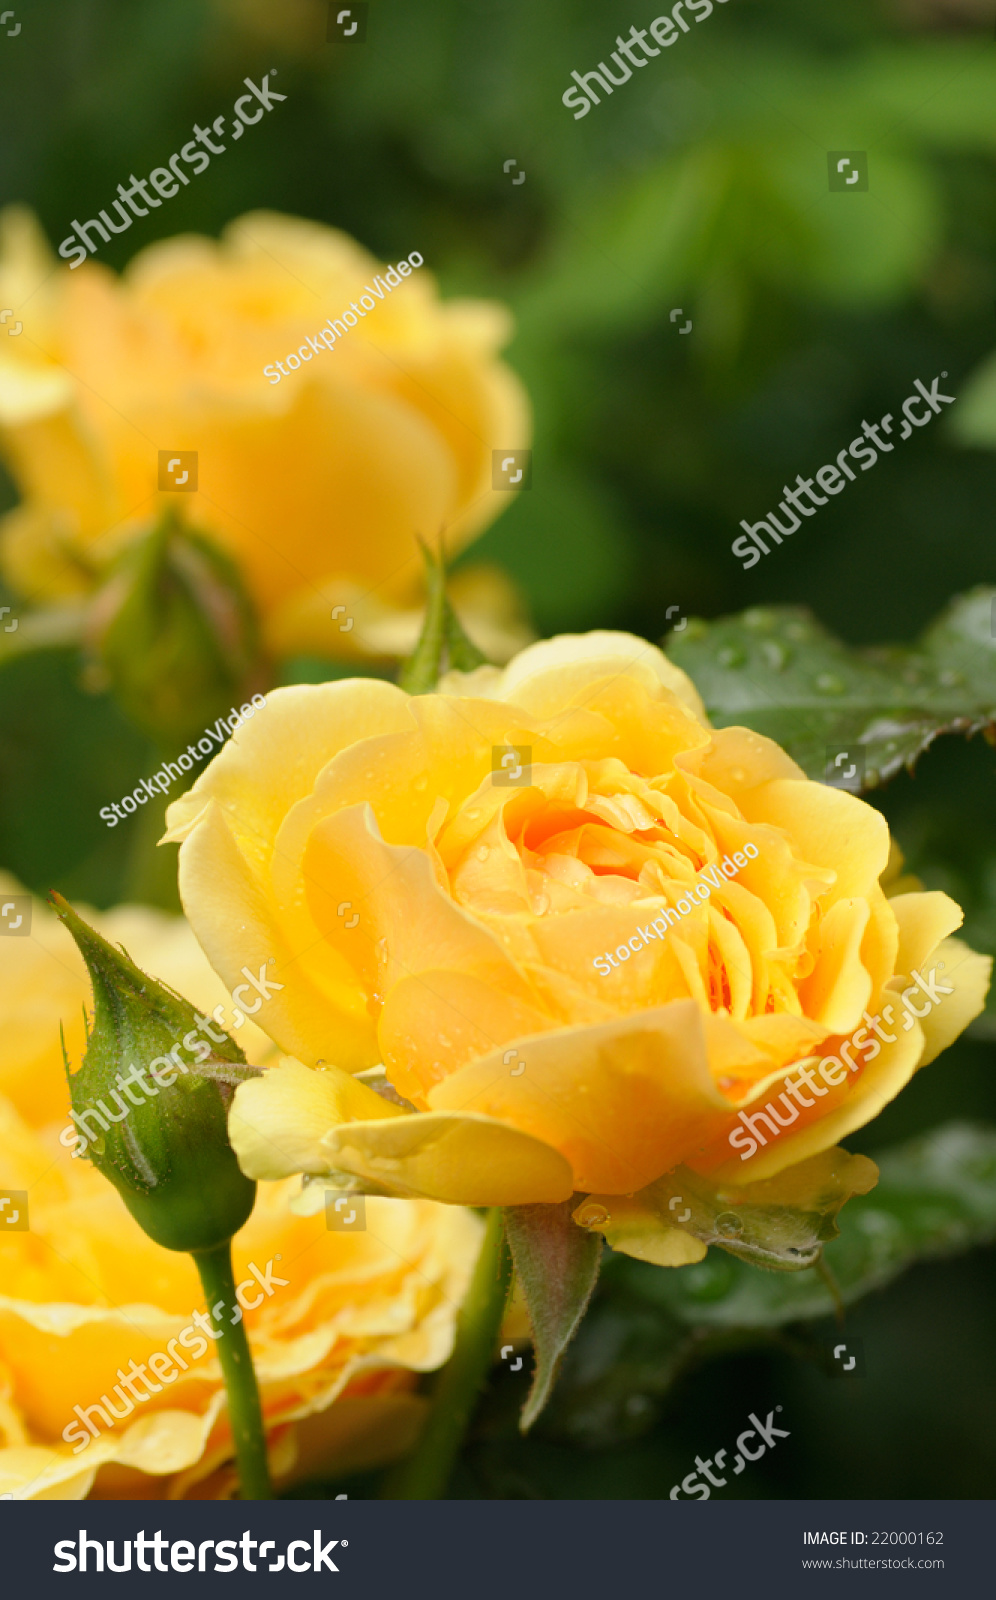 yellow roses with water drops - photo #28